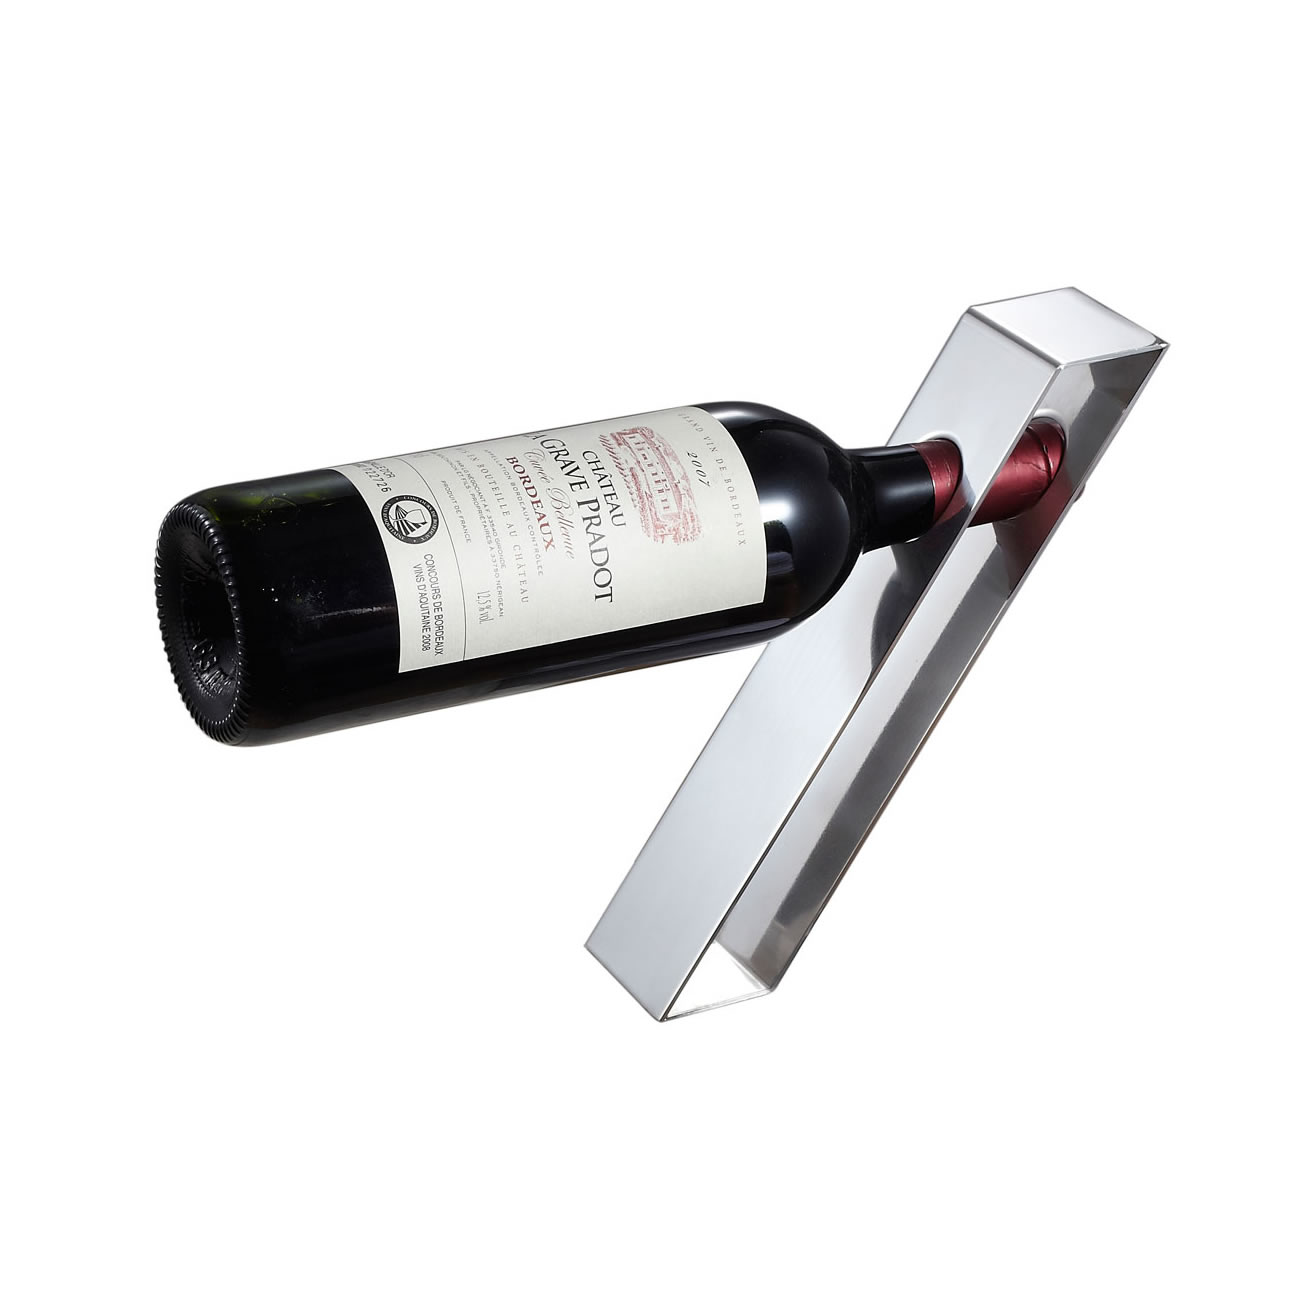 Bellet Stainless Steel Wine Bottle Holder Vino Bruno